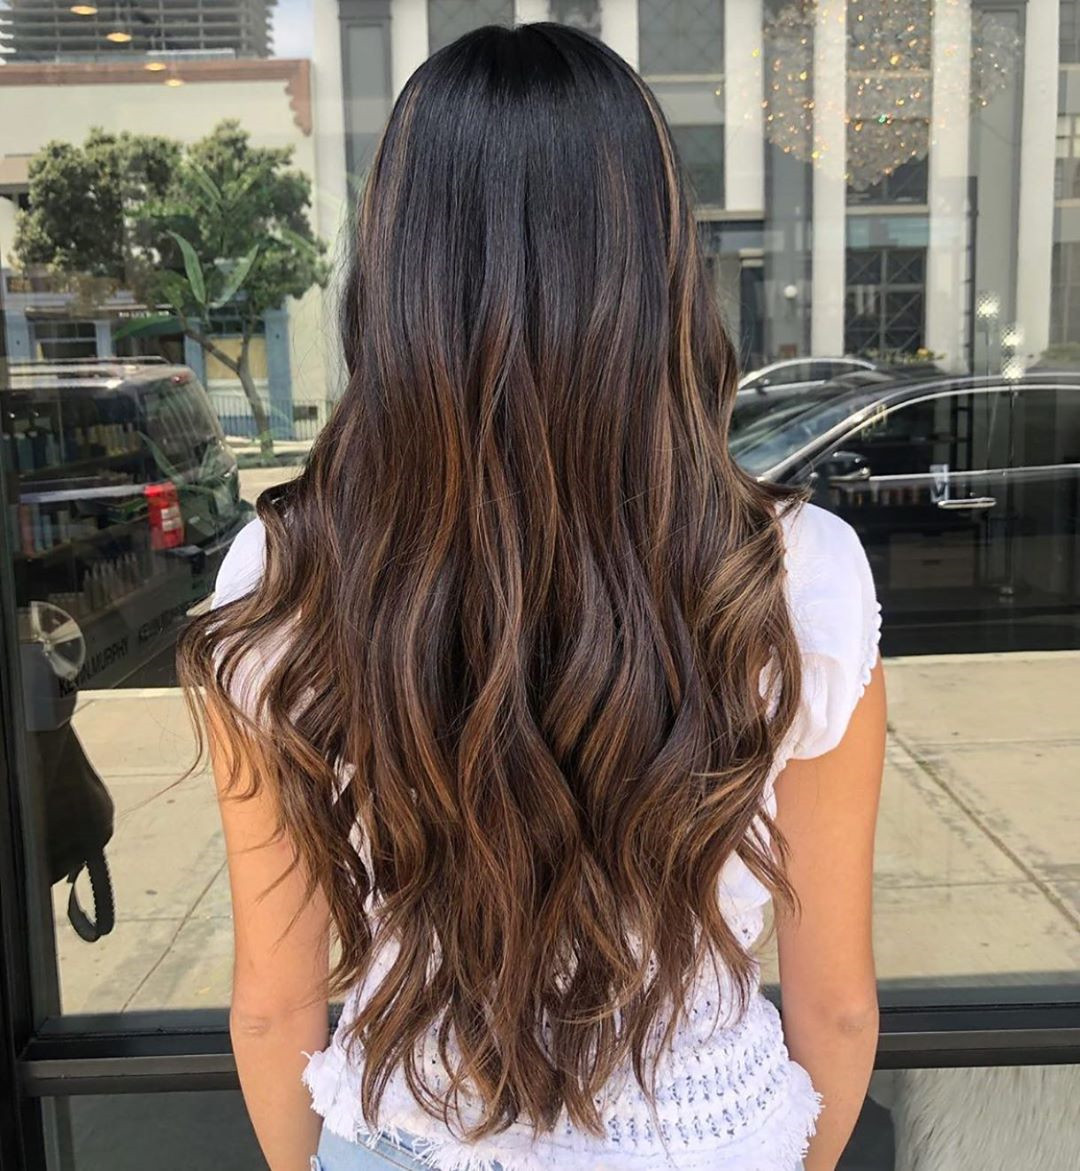 11 Trendy Long Hairstyles for Women to Try This Summer - flippedcase